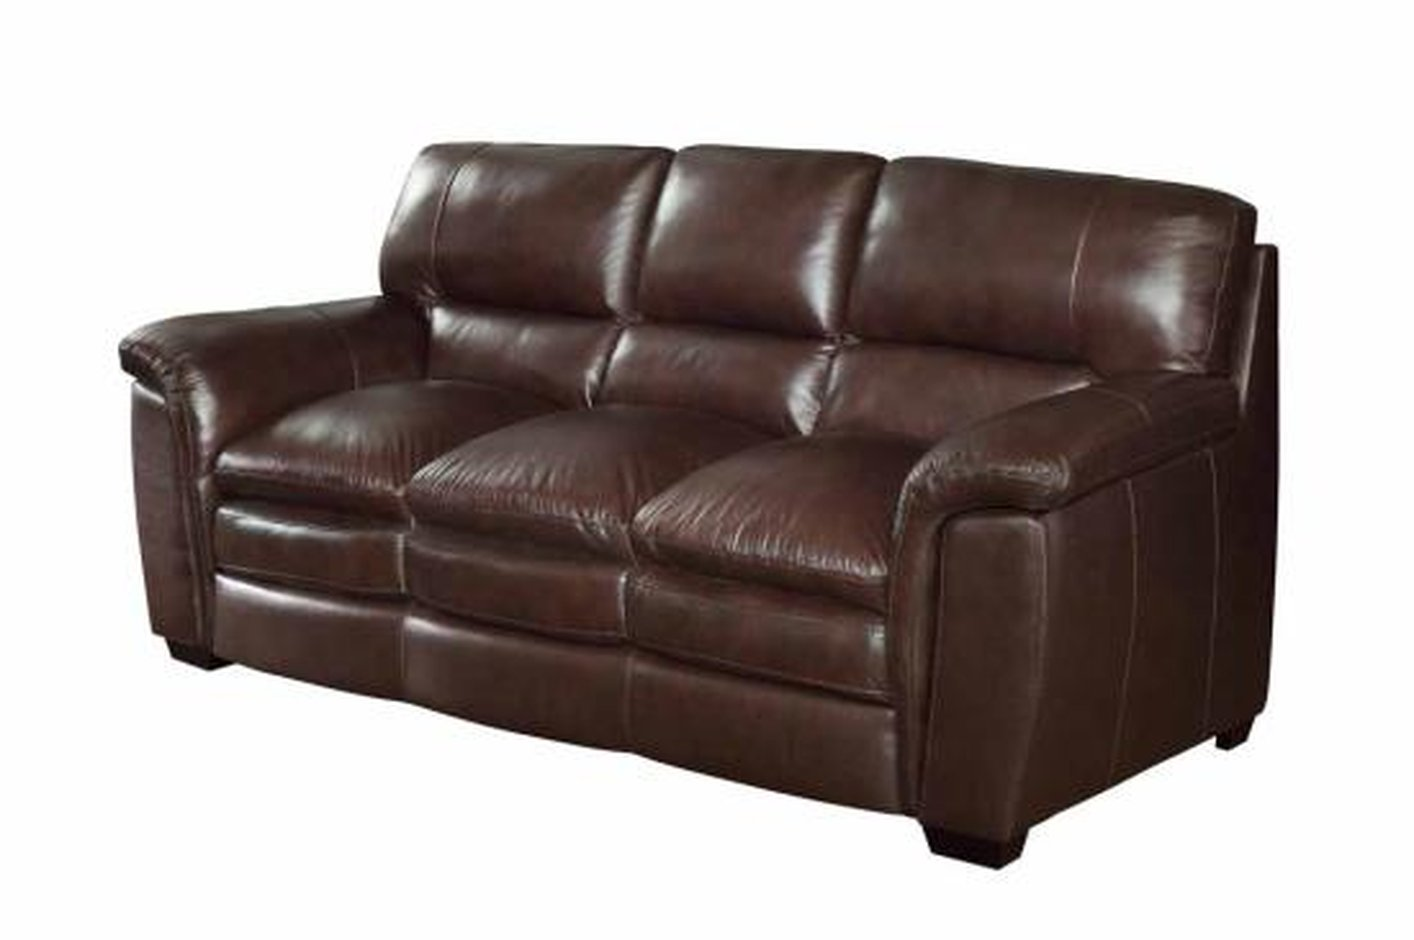 Brown leather sofa roselawnlutheran for Leather furniture